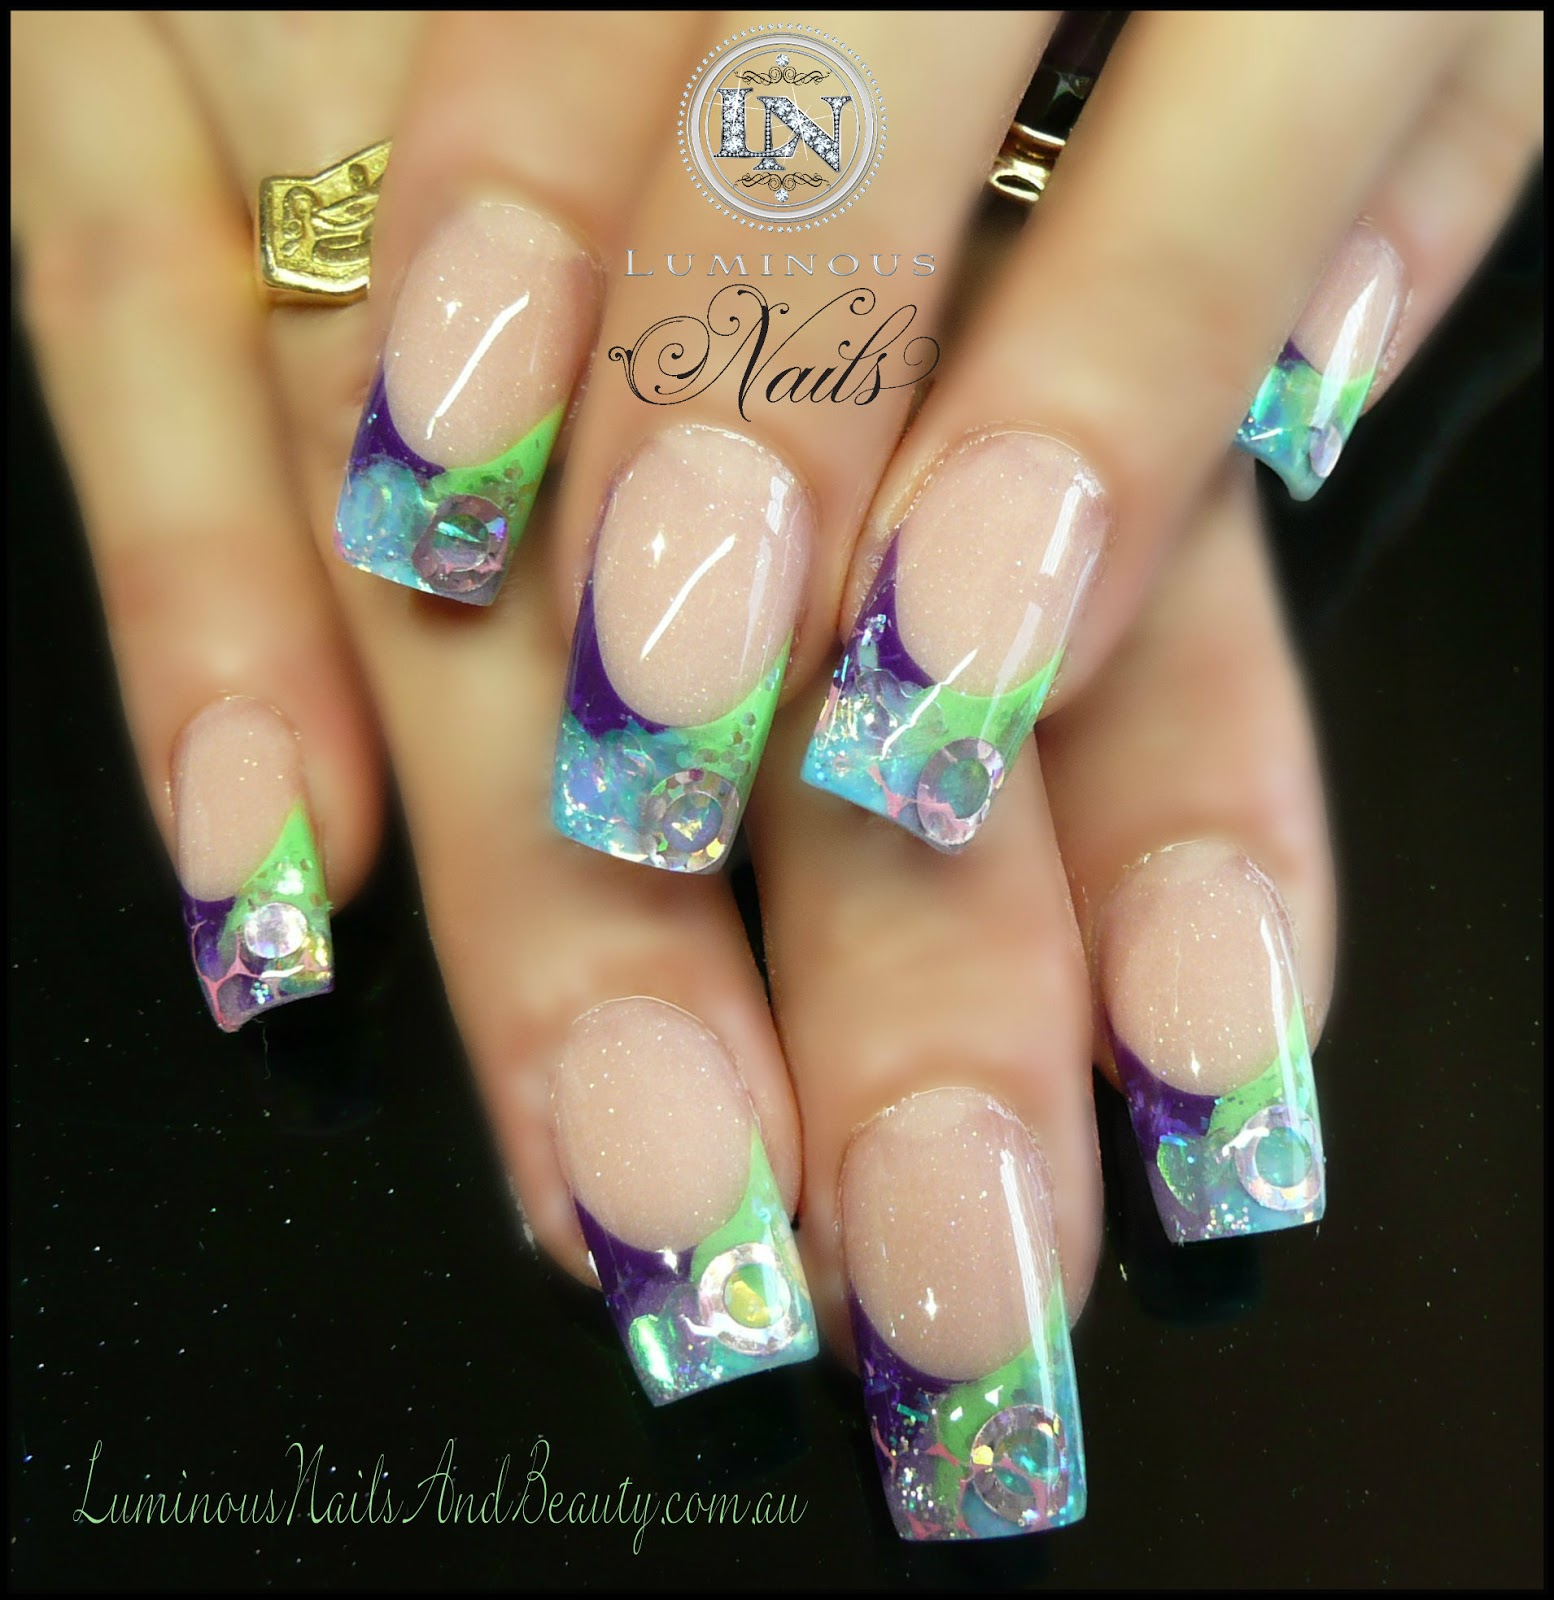 Stiletto leopard print nail designs